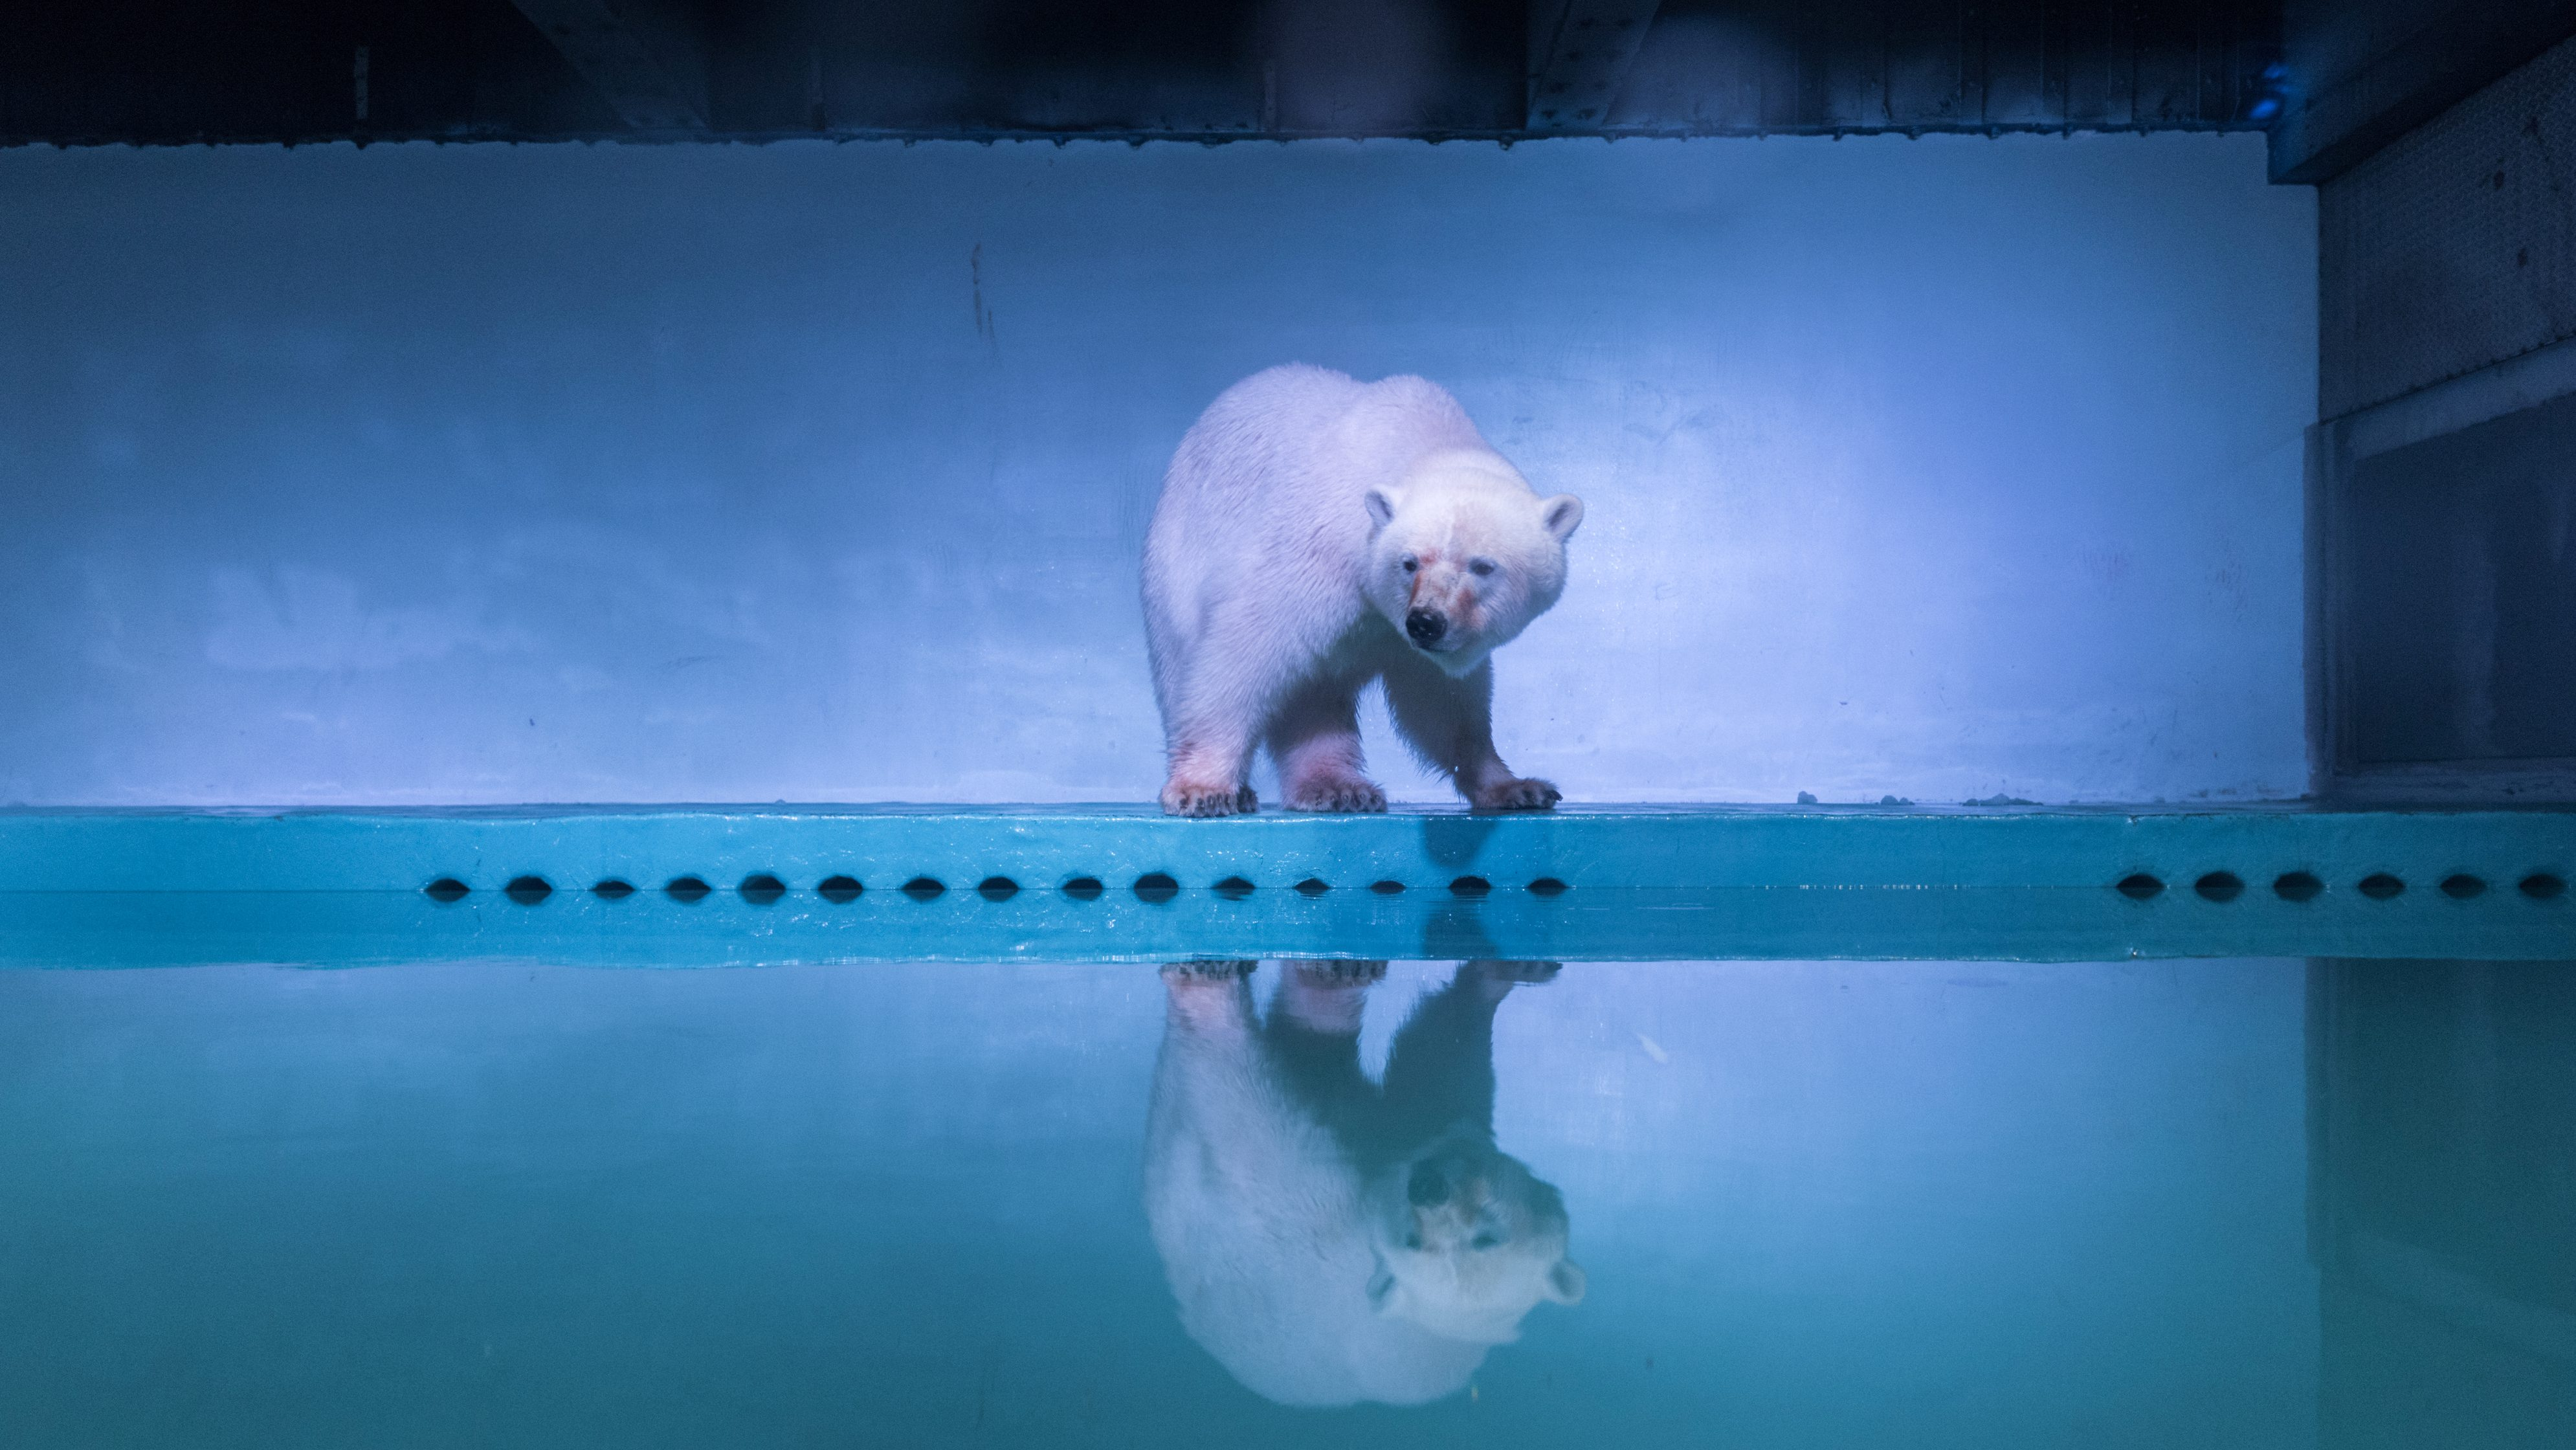 REFILE - ADDITIONAL CAPTION INFORMATIONA polar bear is seen in an aquarium at the Grandview mall in Guangzhou, Guangdong province, China, July 27, 2016. Picture taken July 27, 2016. REUTERS/Stringer ATTENTION EDITORS - THIS IMAGE WAS PROVIDED BY A THIRD PARTY. EDITORIAL USE ONLY. CHINA OUT. NO COMMERCIAL OR EDITORIAL SALES IN CHINA. - RTSK0PW